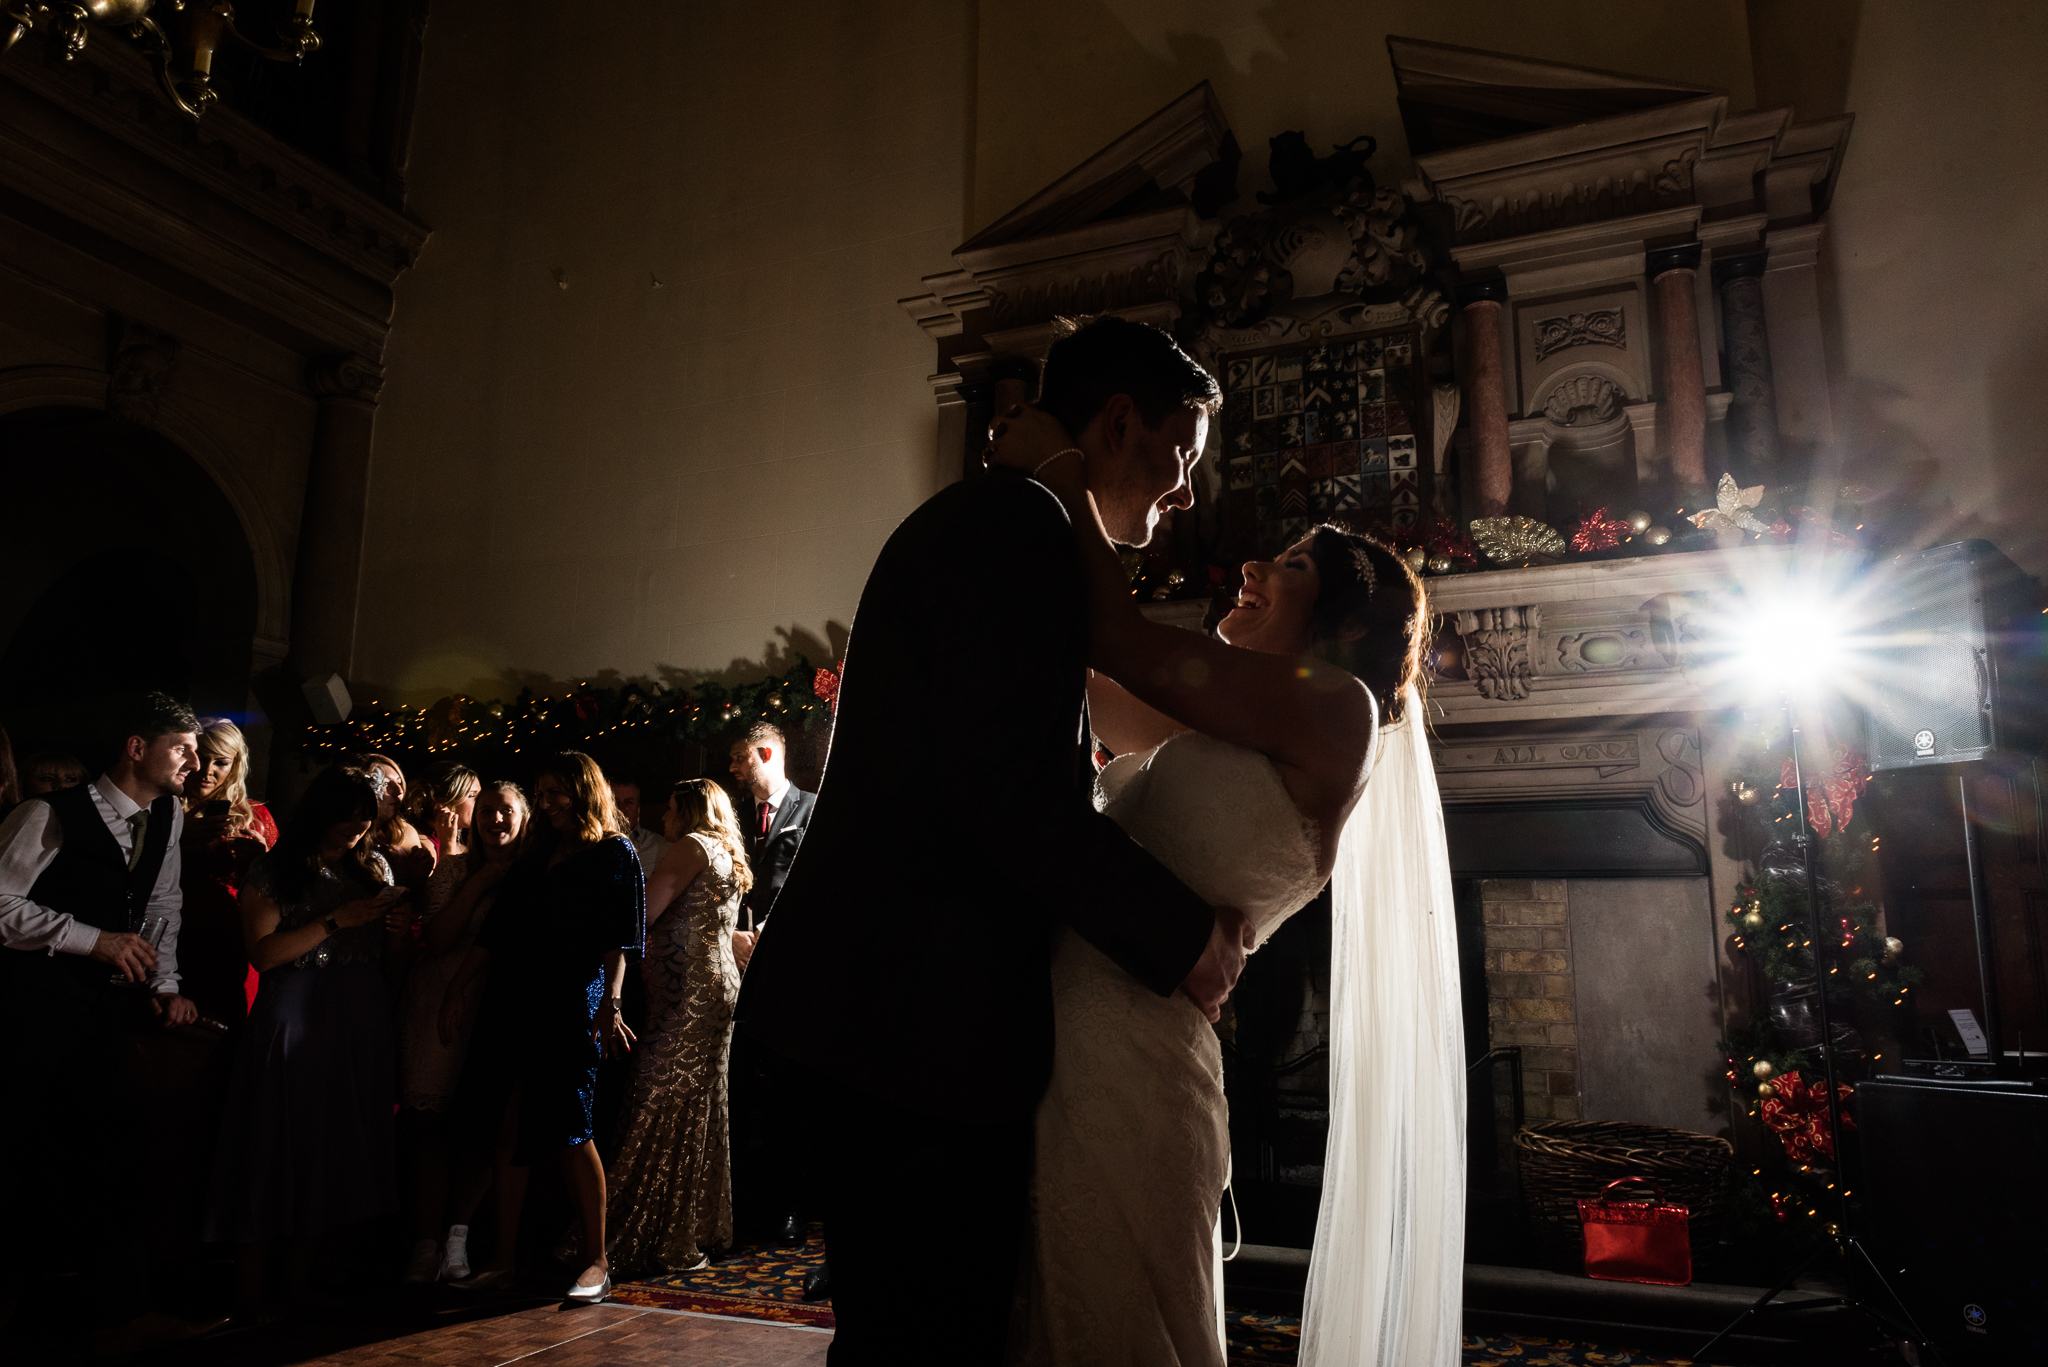 Staffordshire Winter Christmas Wedding at Holy Trinity Church and Keele Hall - Documentary Photography by Jenny Harper-44.jpg